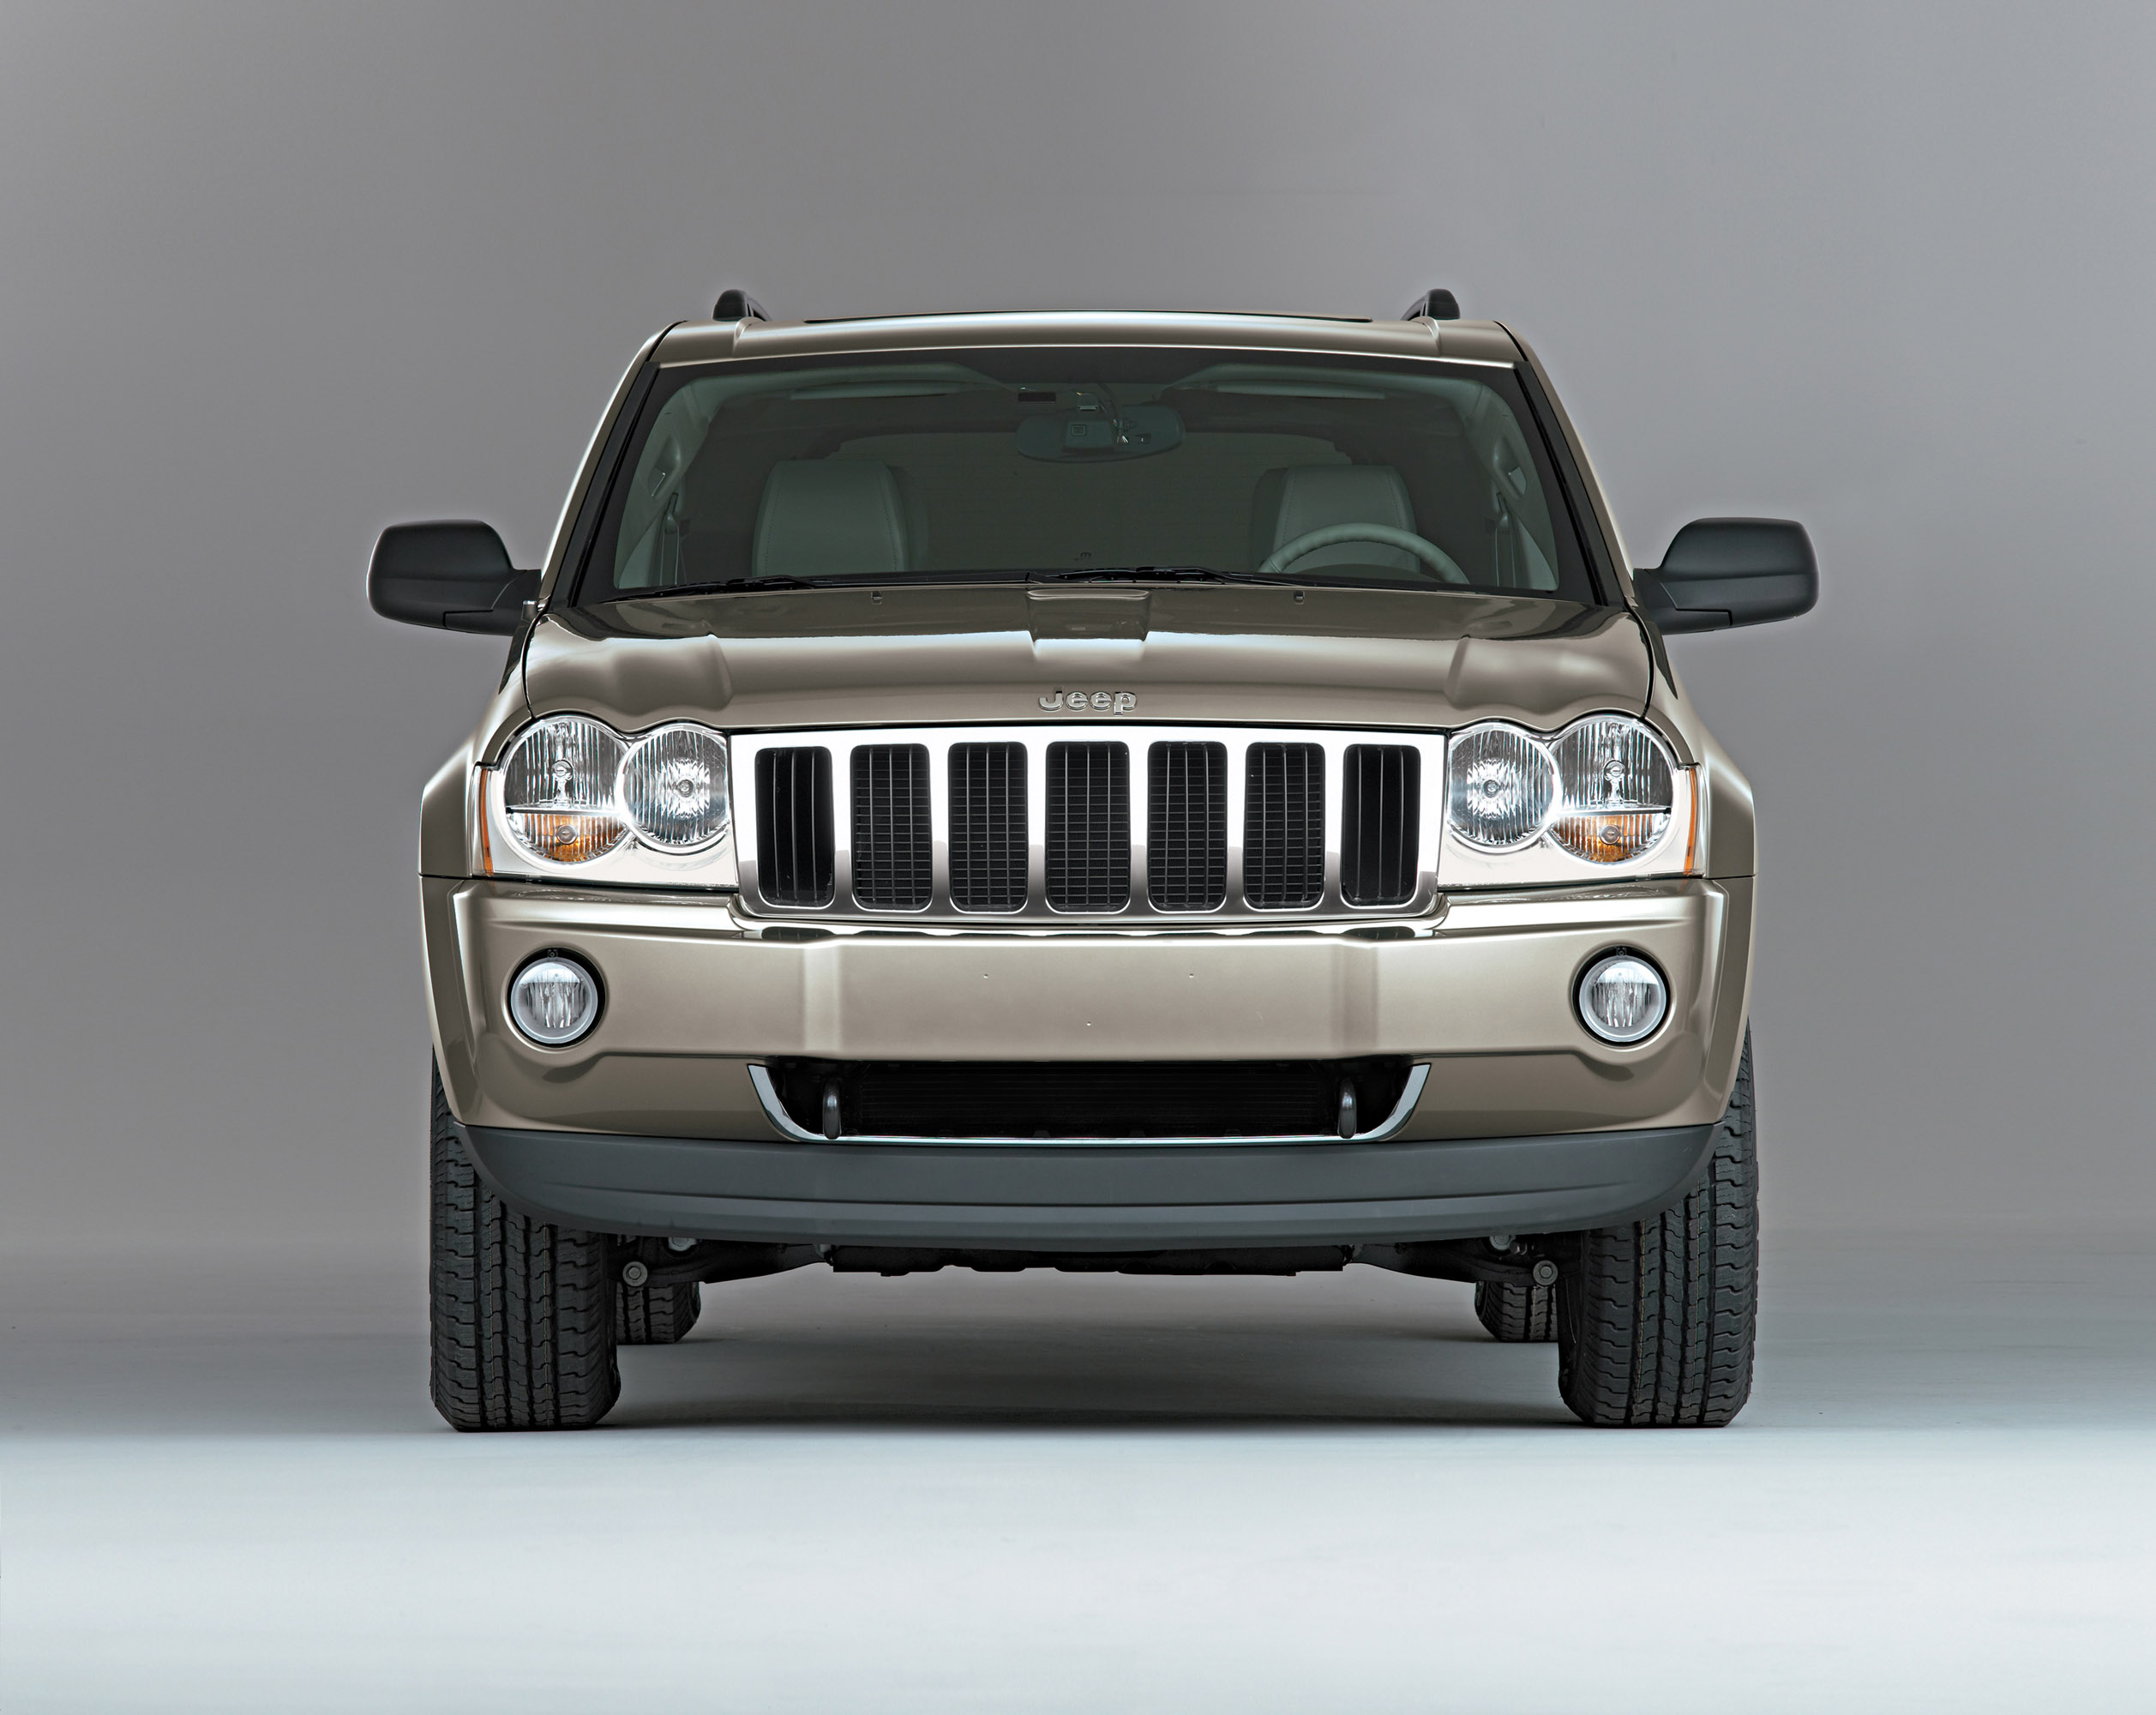 2011 jeep grand cherokee crd owners manual full version free software download trackeratlanta. Black Bedroom Furniture Sets. Home Design Ideas